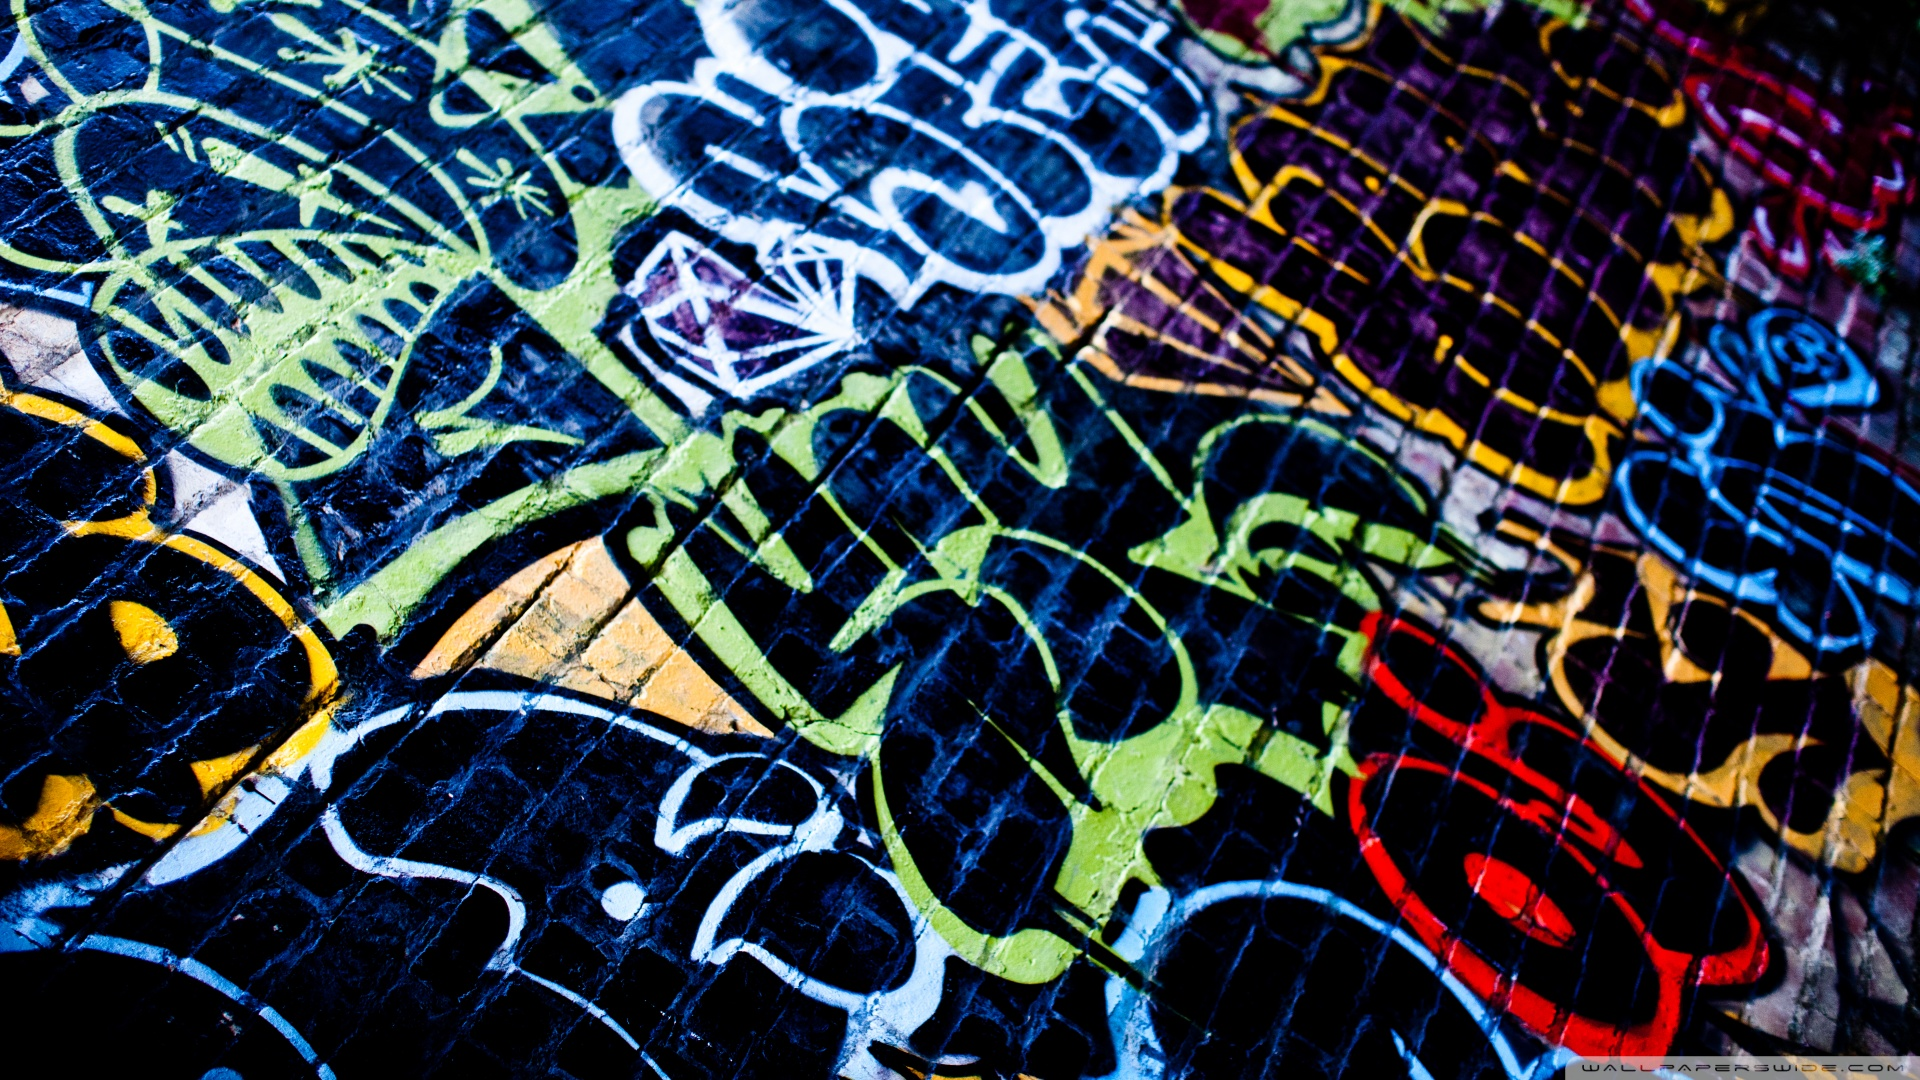 HD Graffiti Desktop Wallpapers  WallpaperSafari